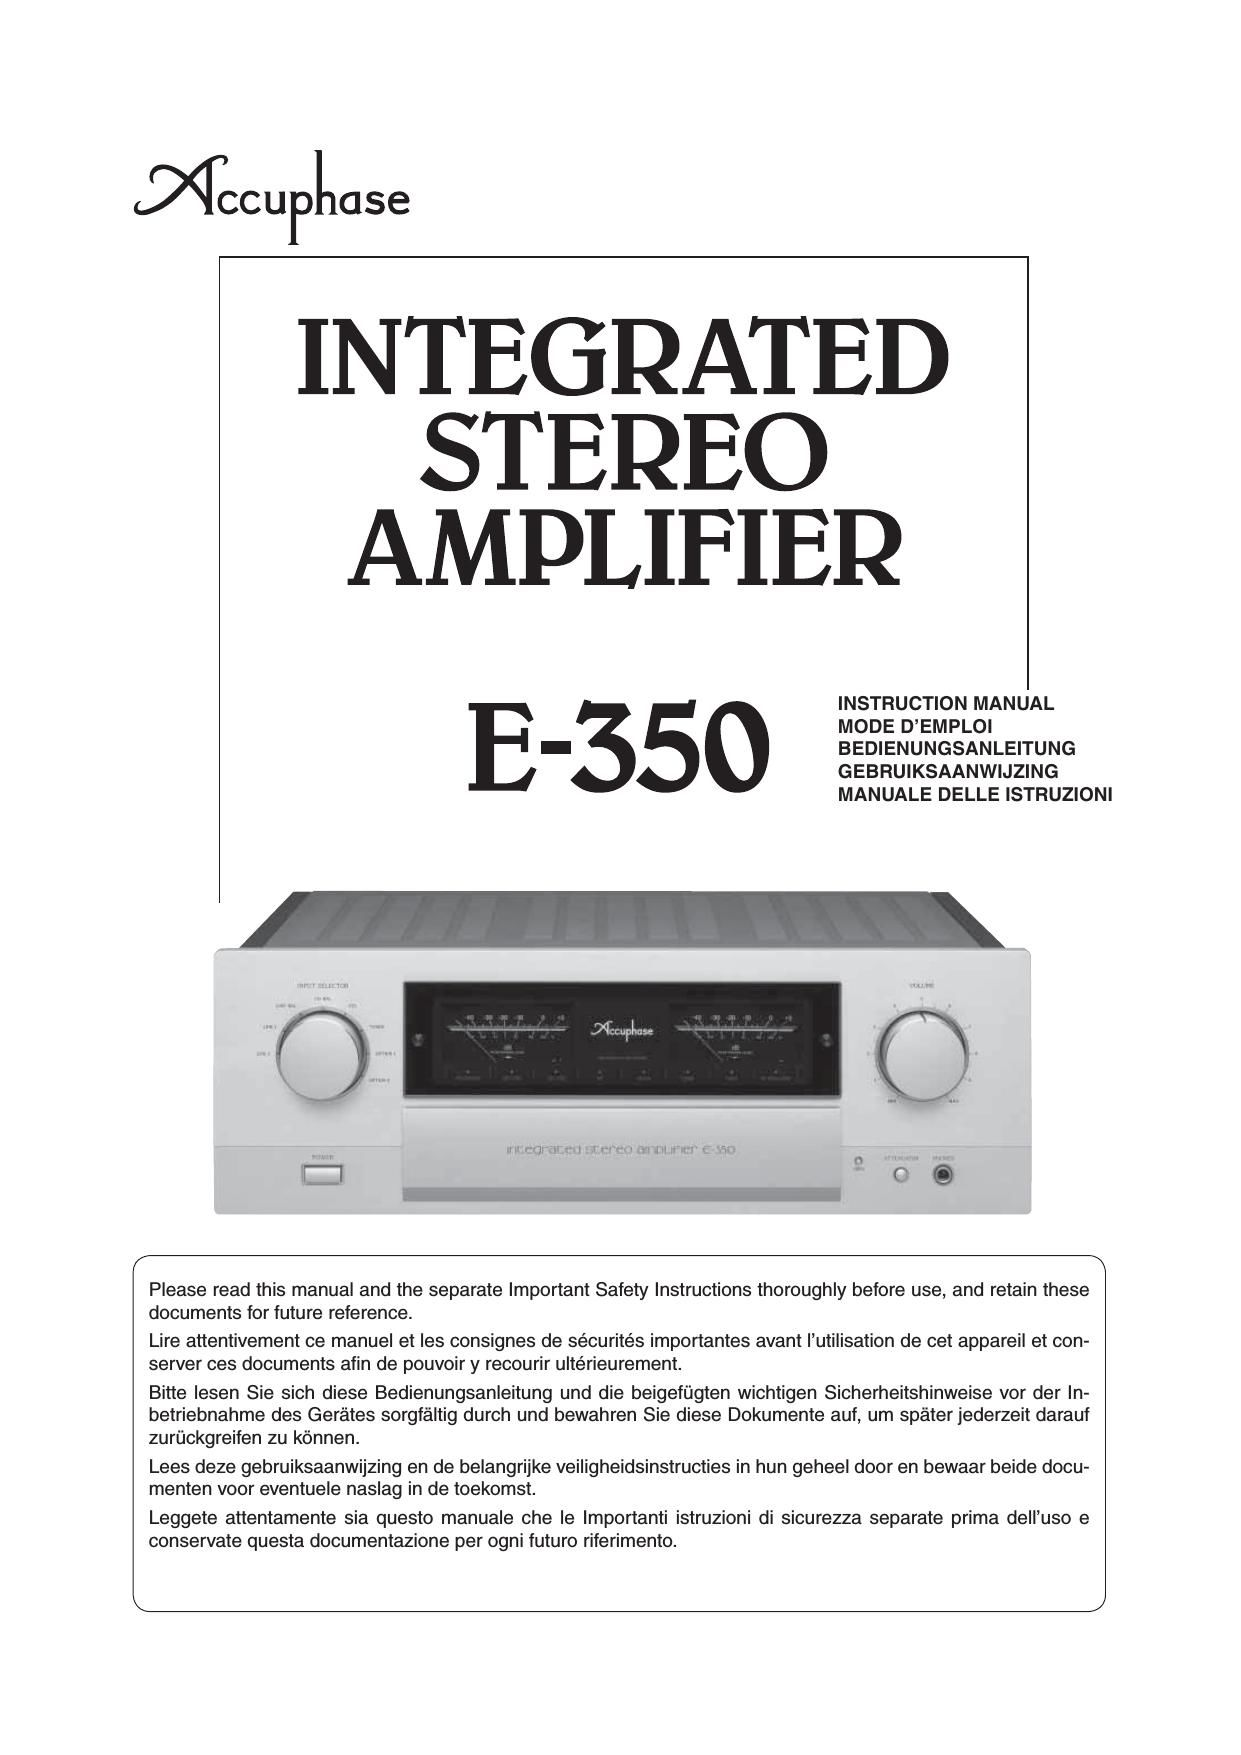 accuphase e 350 owners manual rh audioservicemanuals com accuphase e-212 user manual accuphase e-212 user manual